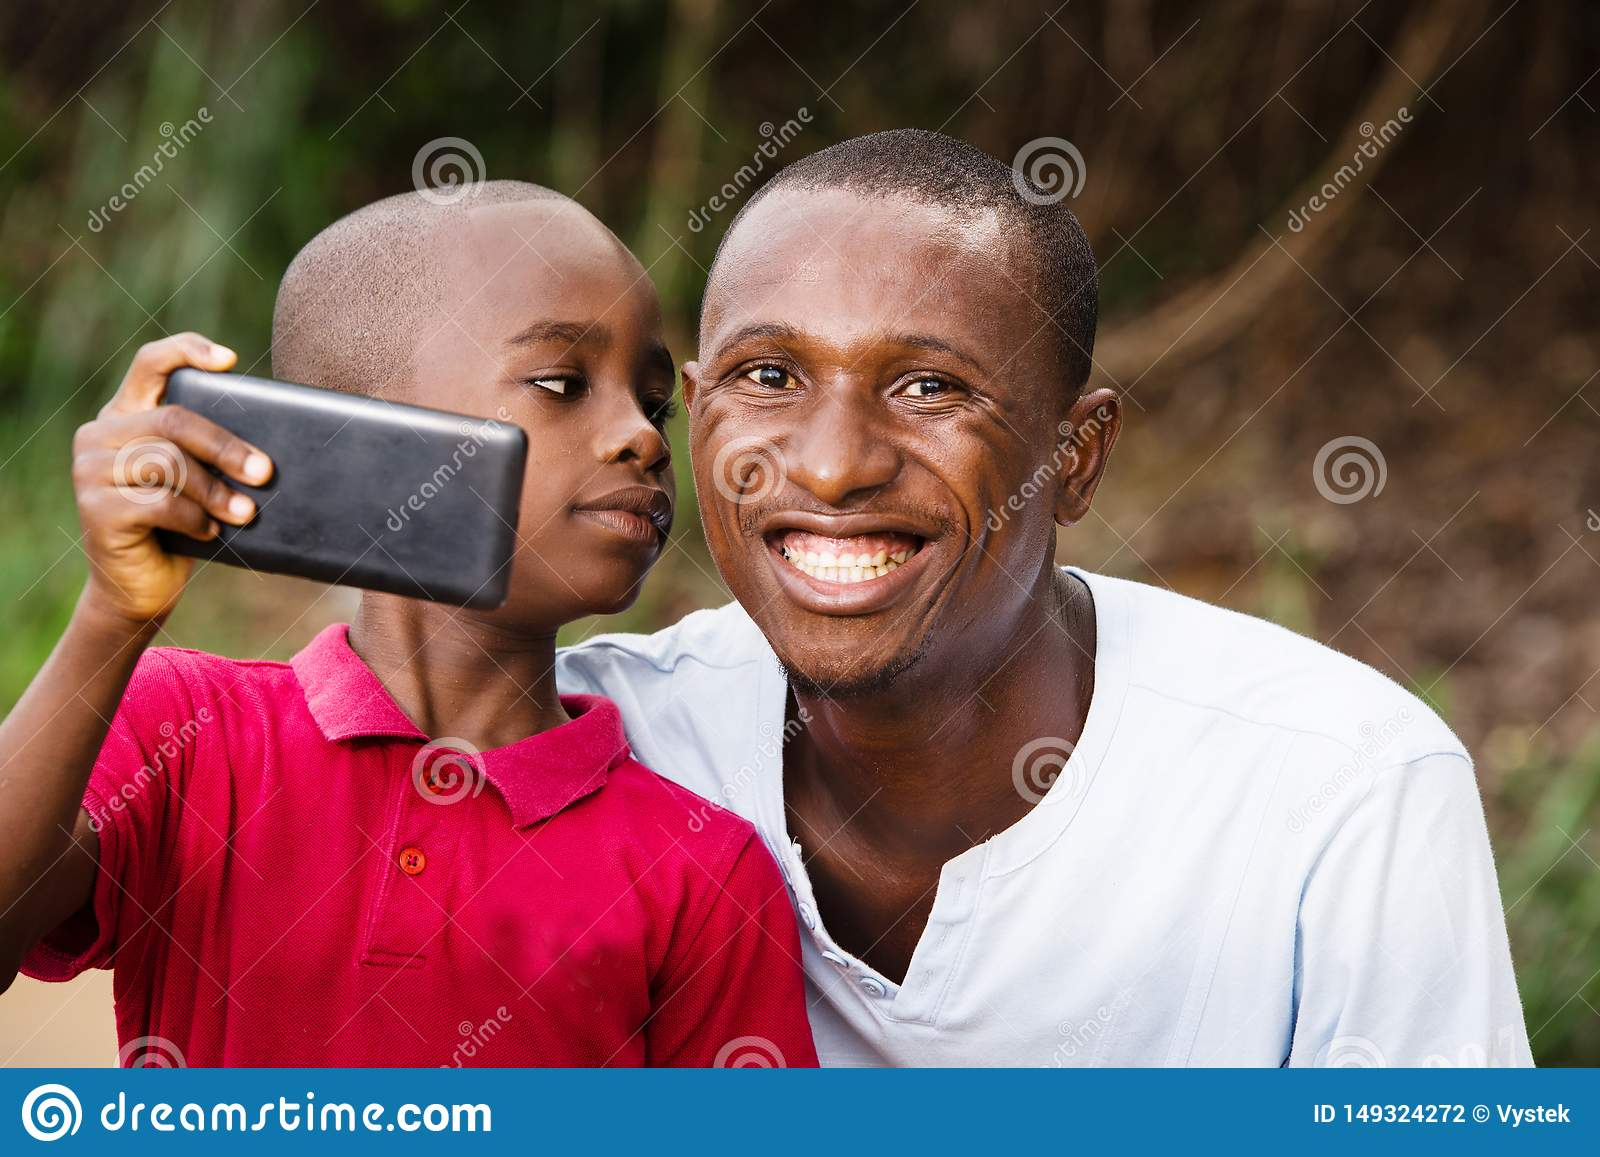 Close-up of a man and his child, happy